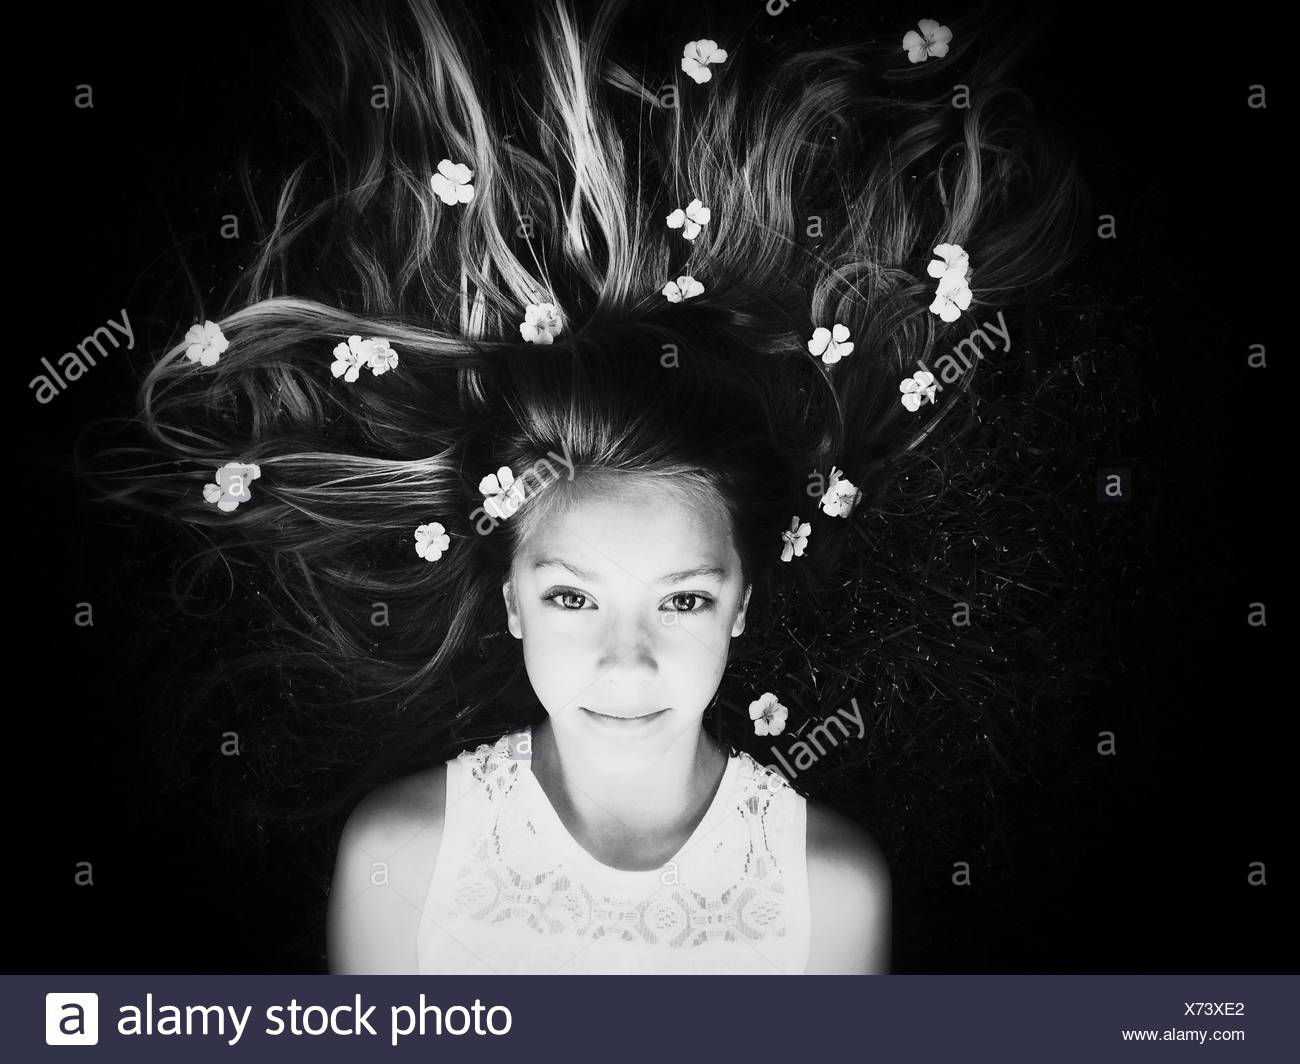 Portrait Of Girl Lying Down With Flowers In Hair - Stock Image